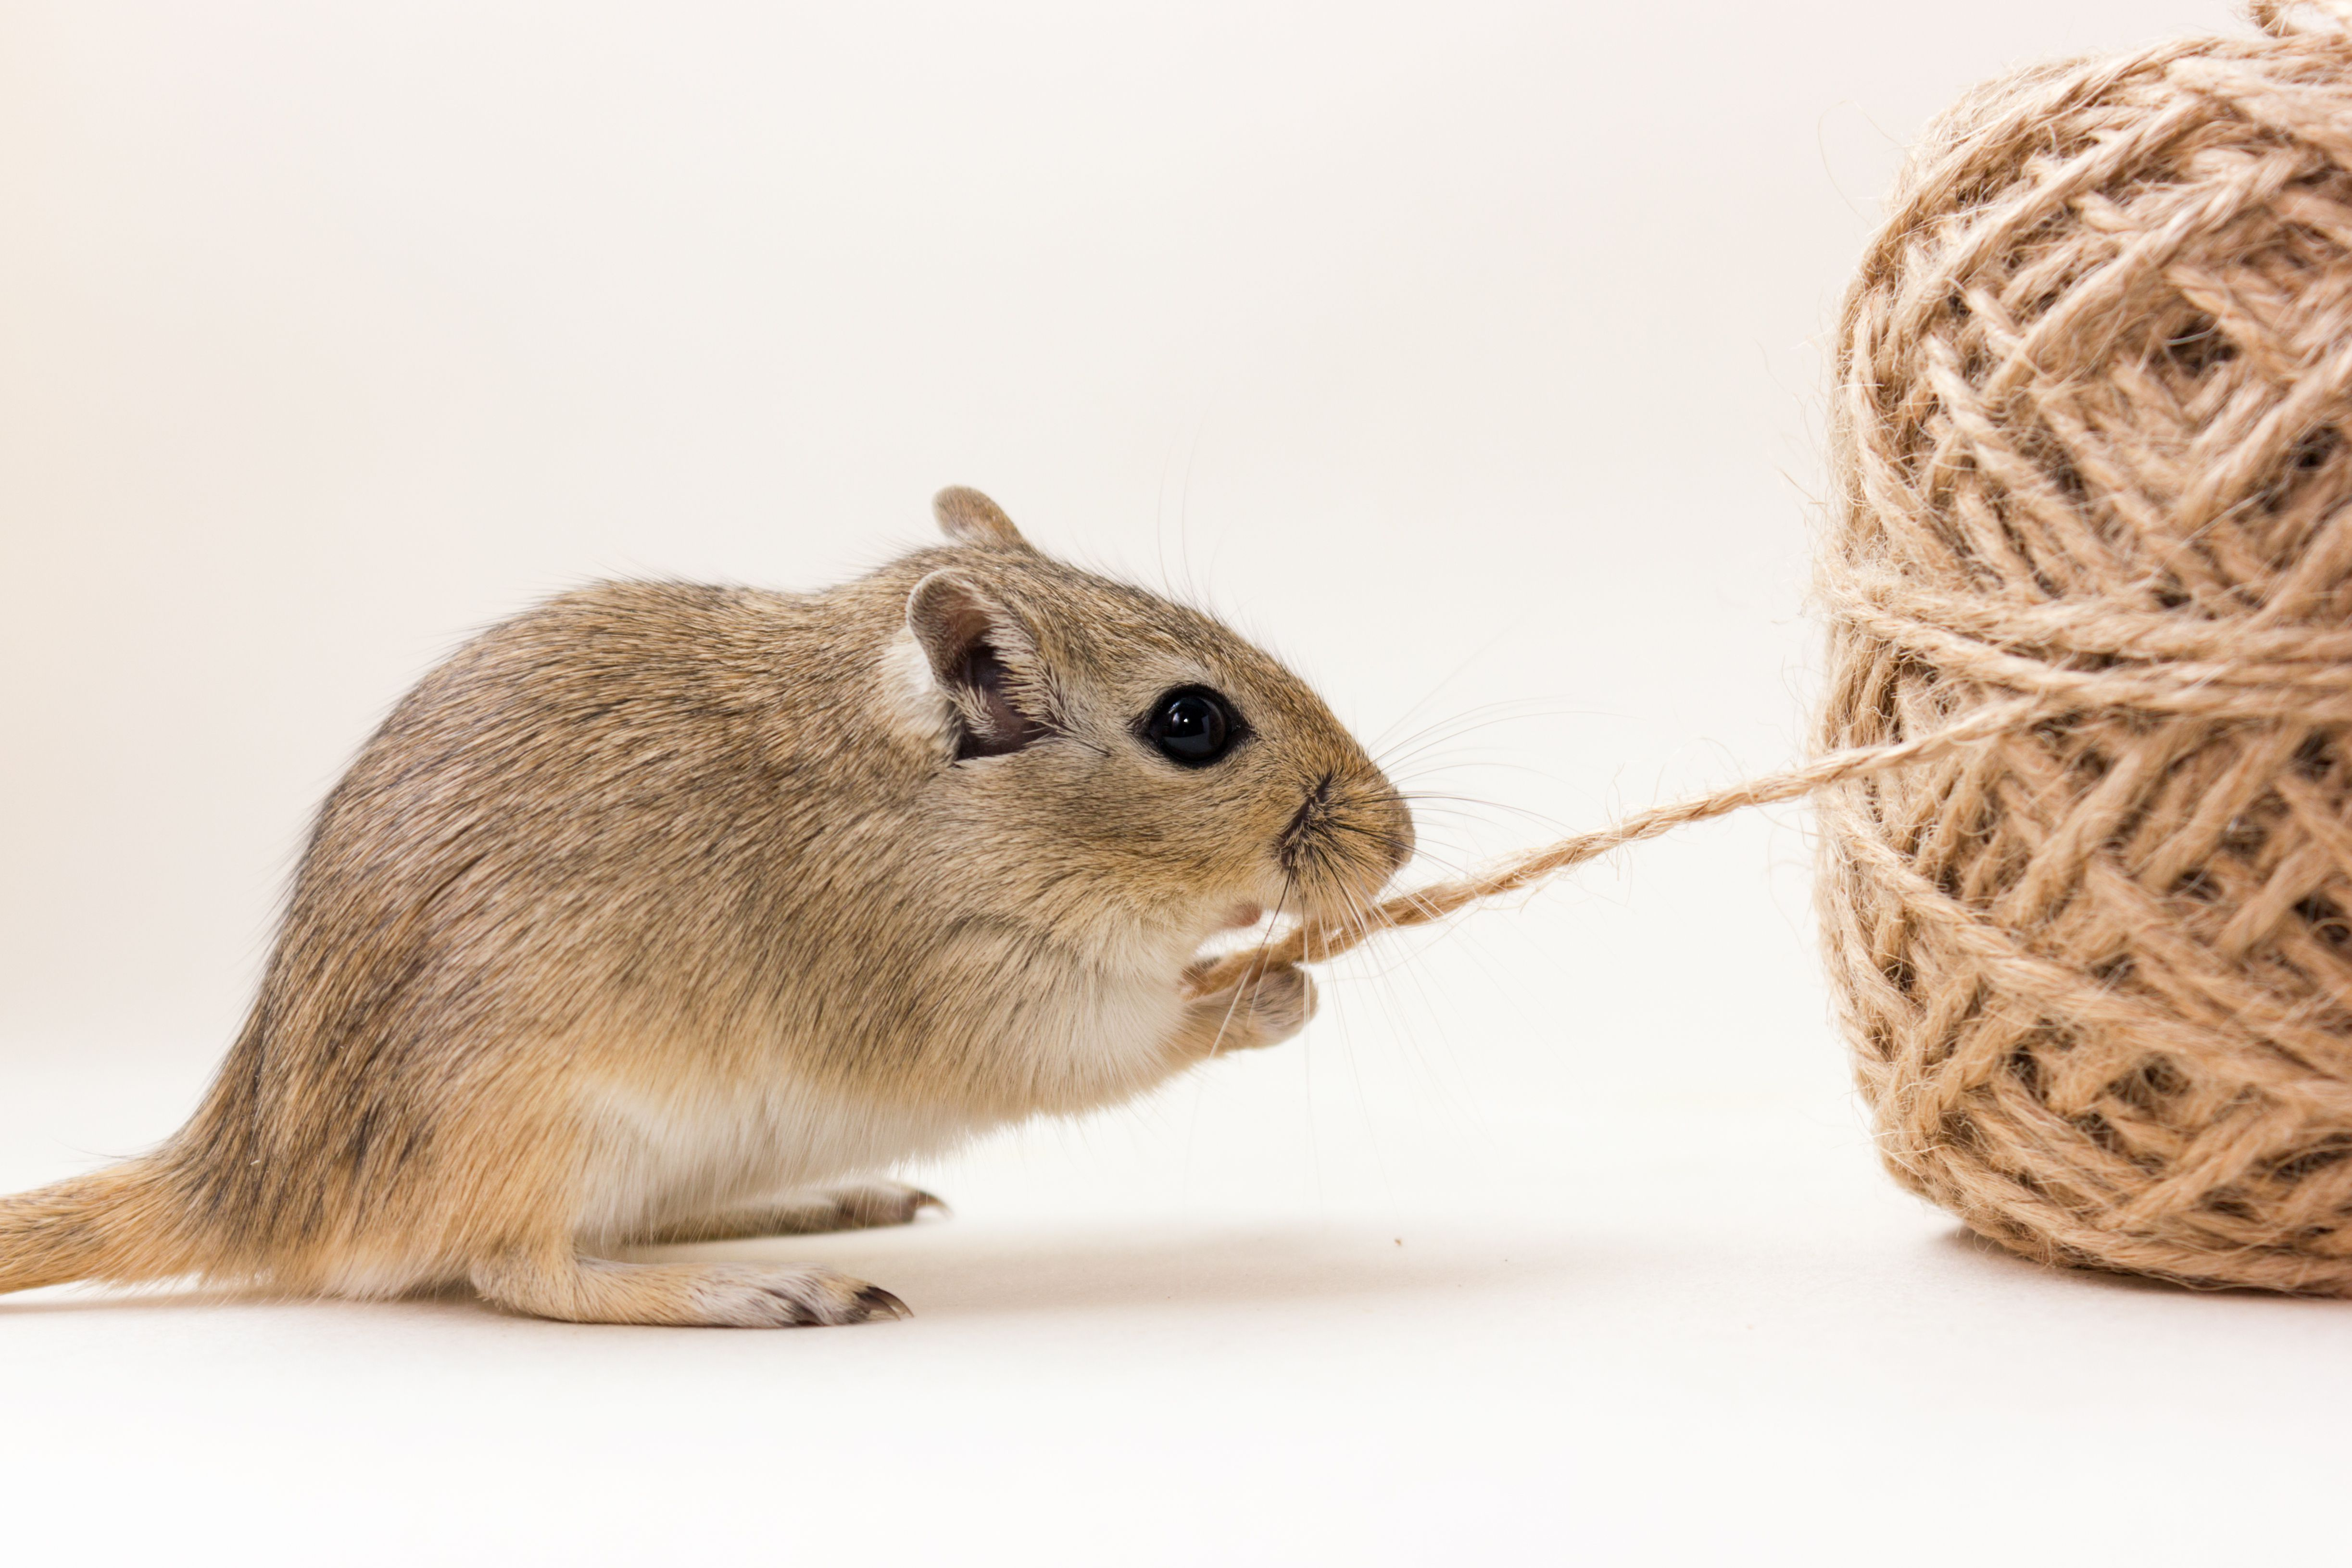 Gerbil chewing on twine attached to a large ball.